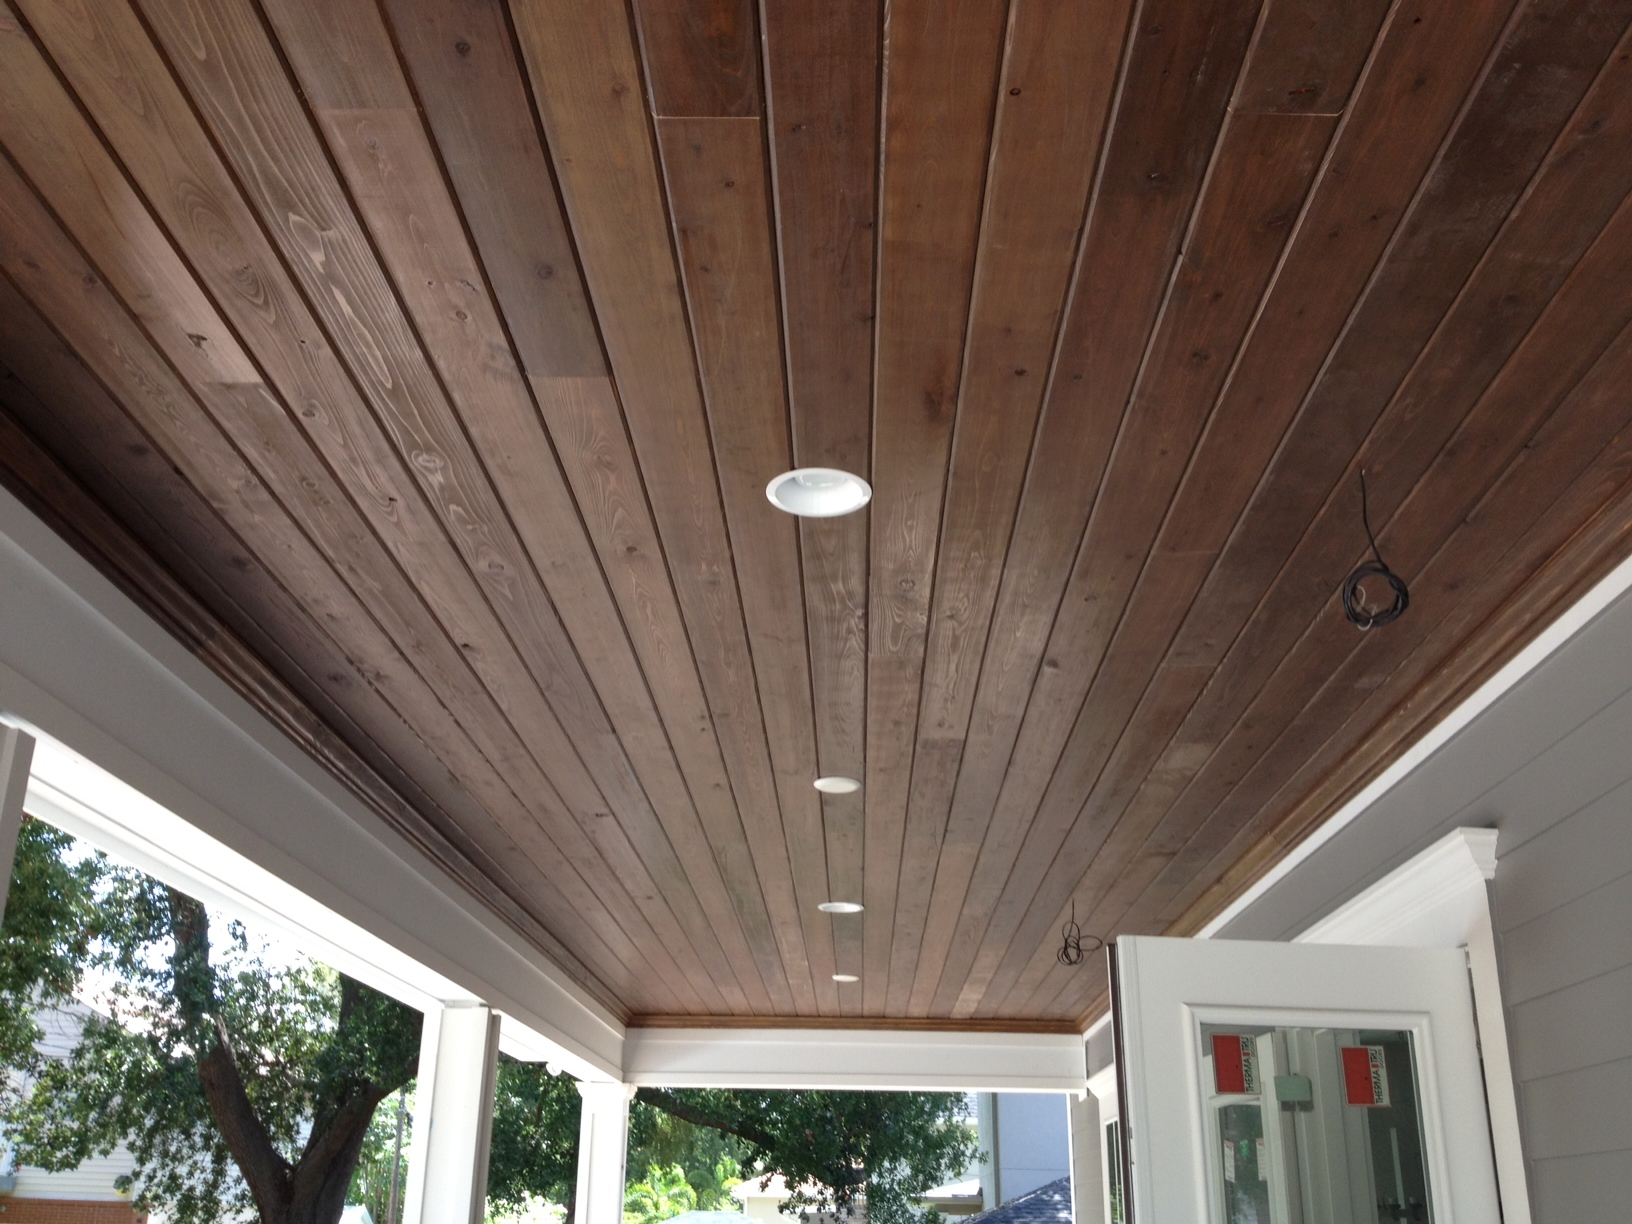 Tongue and groove ceiling - Gloger Construction